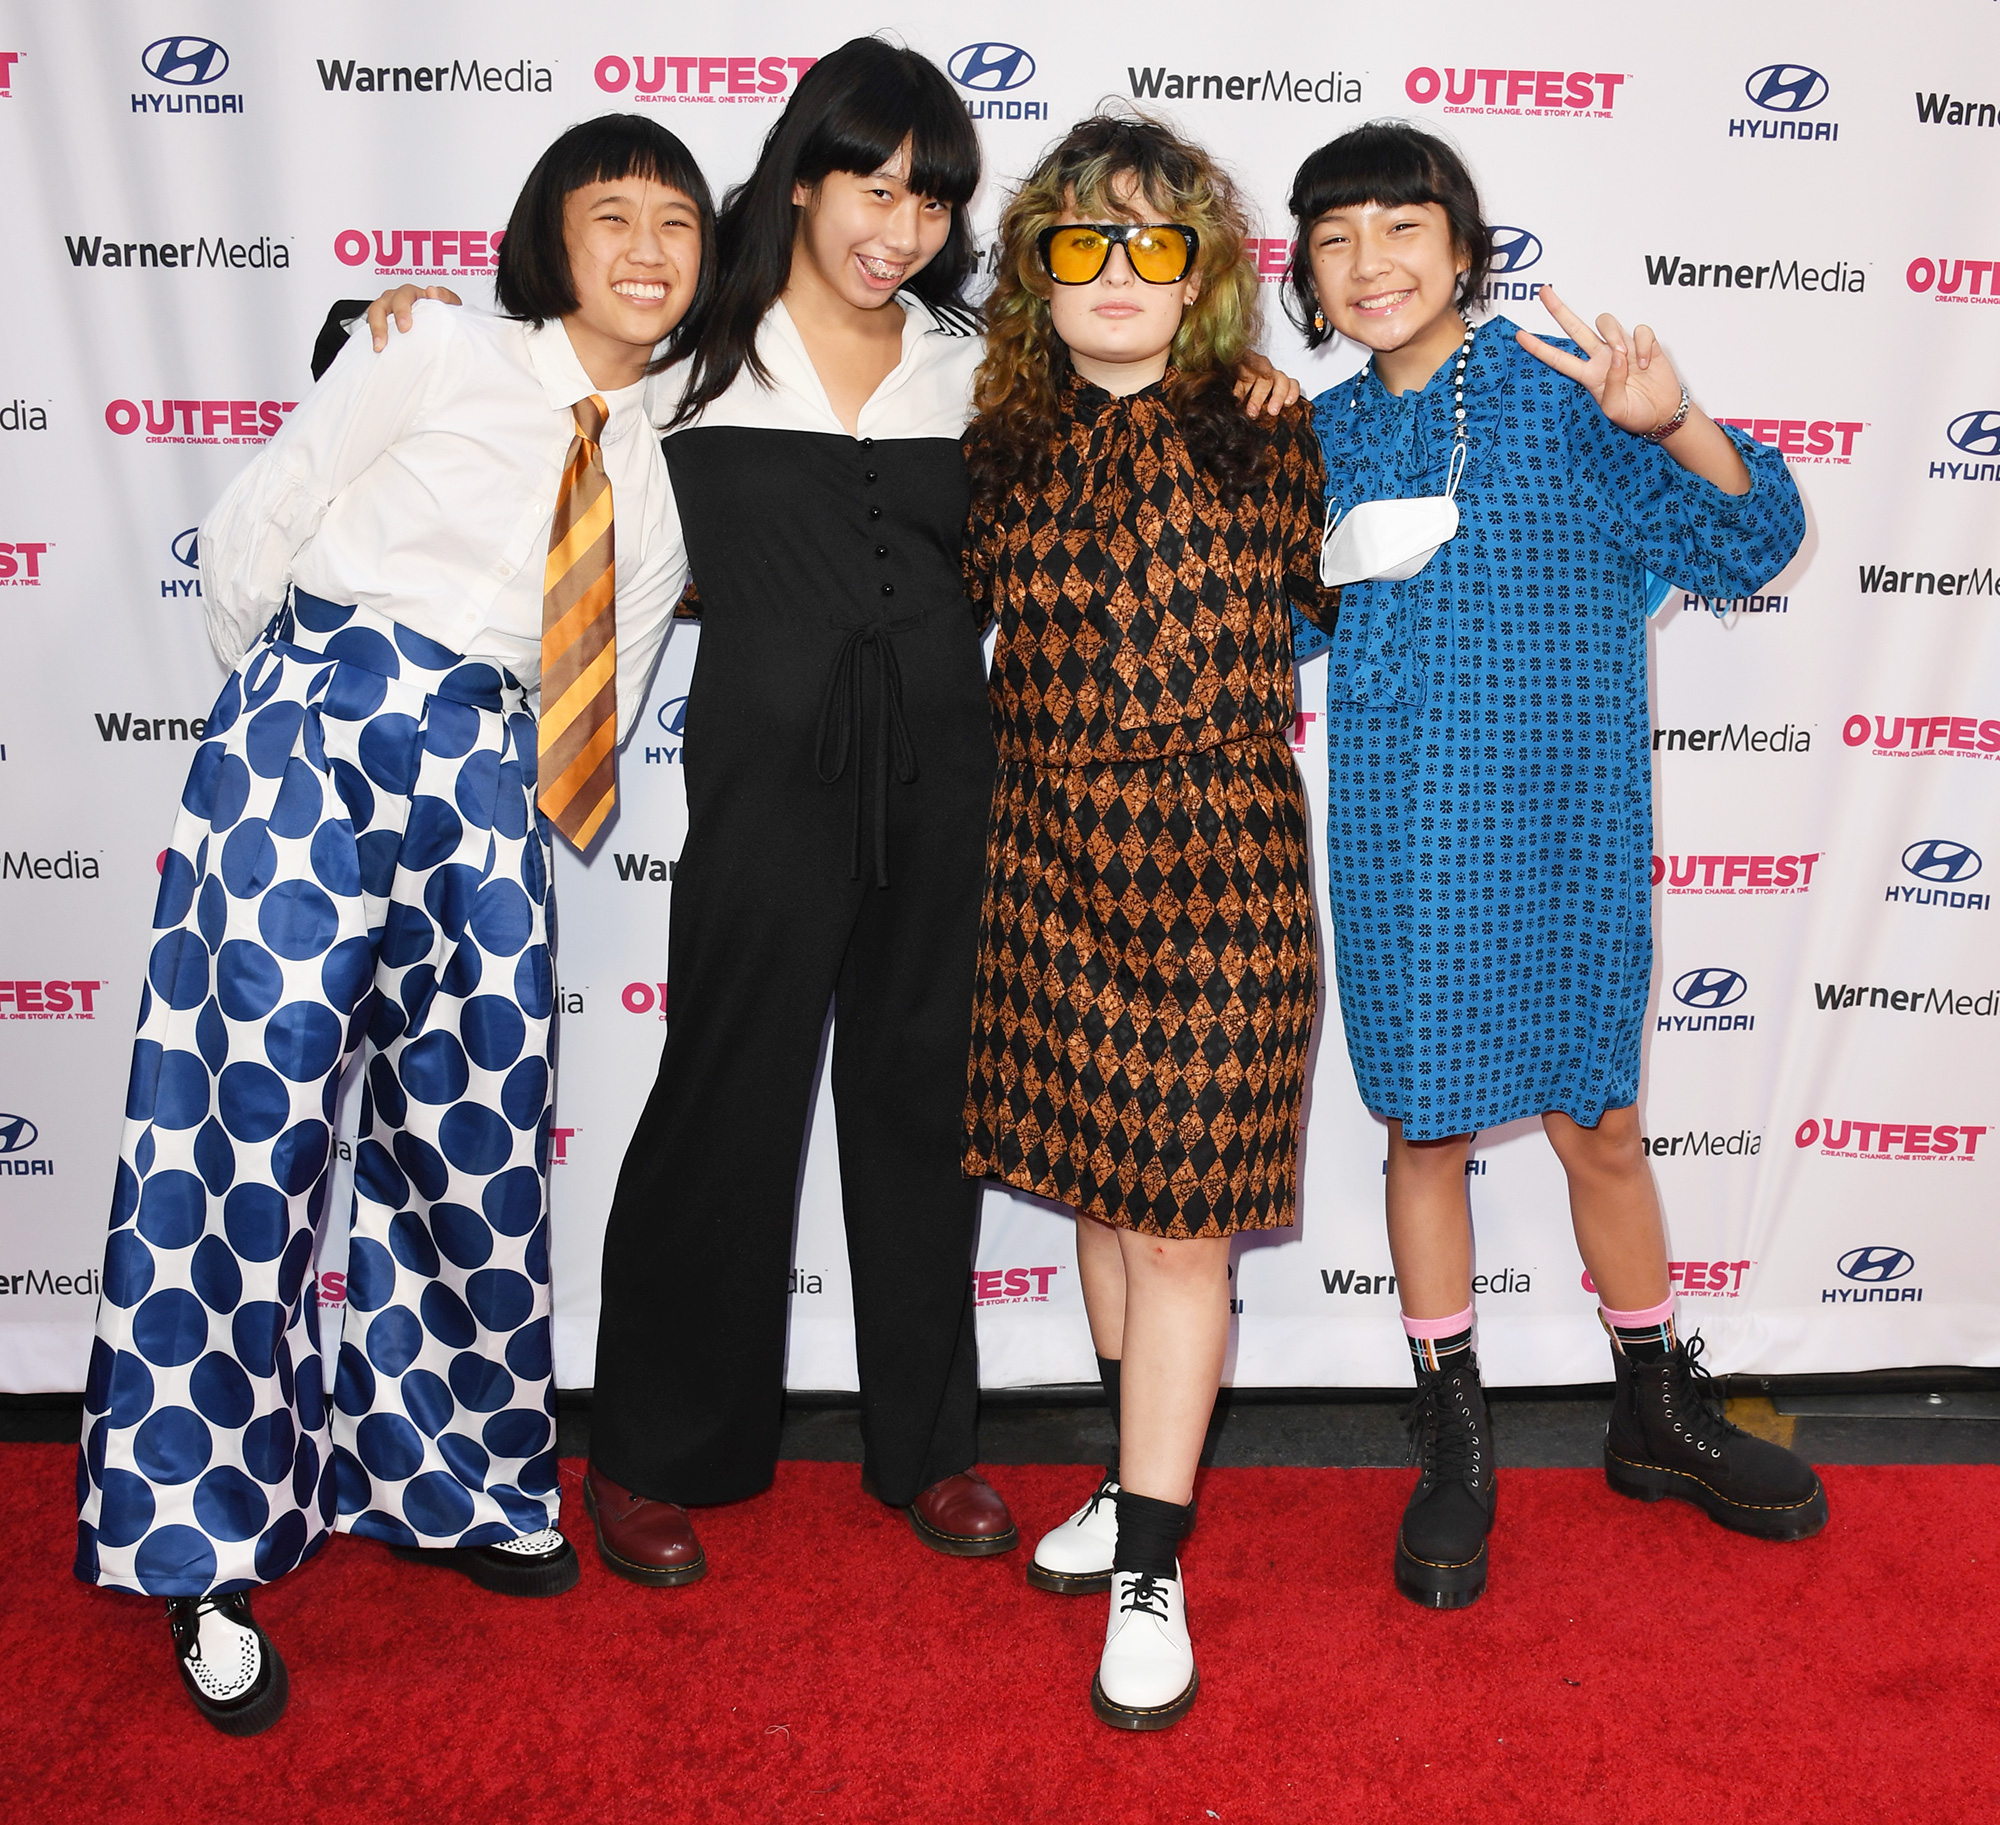 Bela Salazar, Eloise Wong, Lucia de la Garza and Mila de la Garza of The Linda Linda attend Closing Night Of 2021 Outfest Los Angeles LGBTQ Film Festival at The Orpheum Theatre on August 22, 2021 in Los Angeles, California.